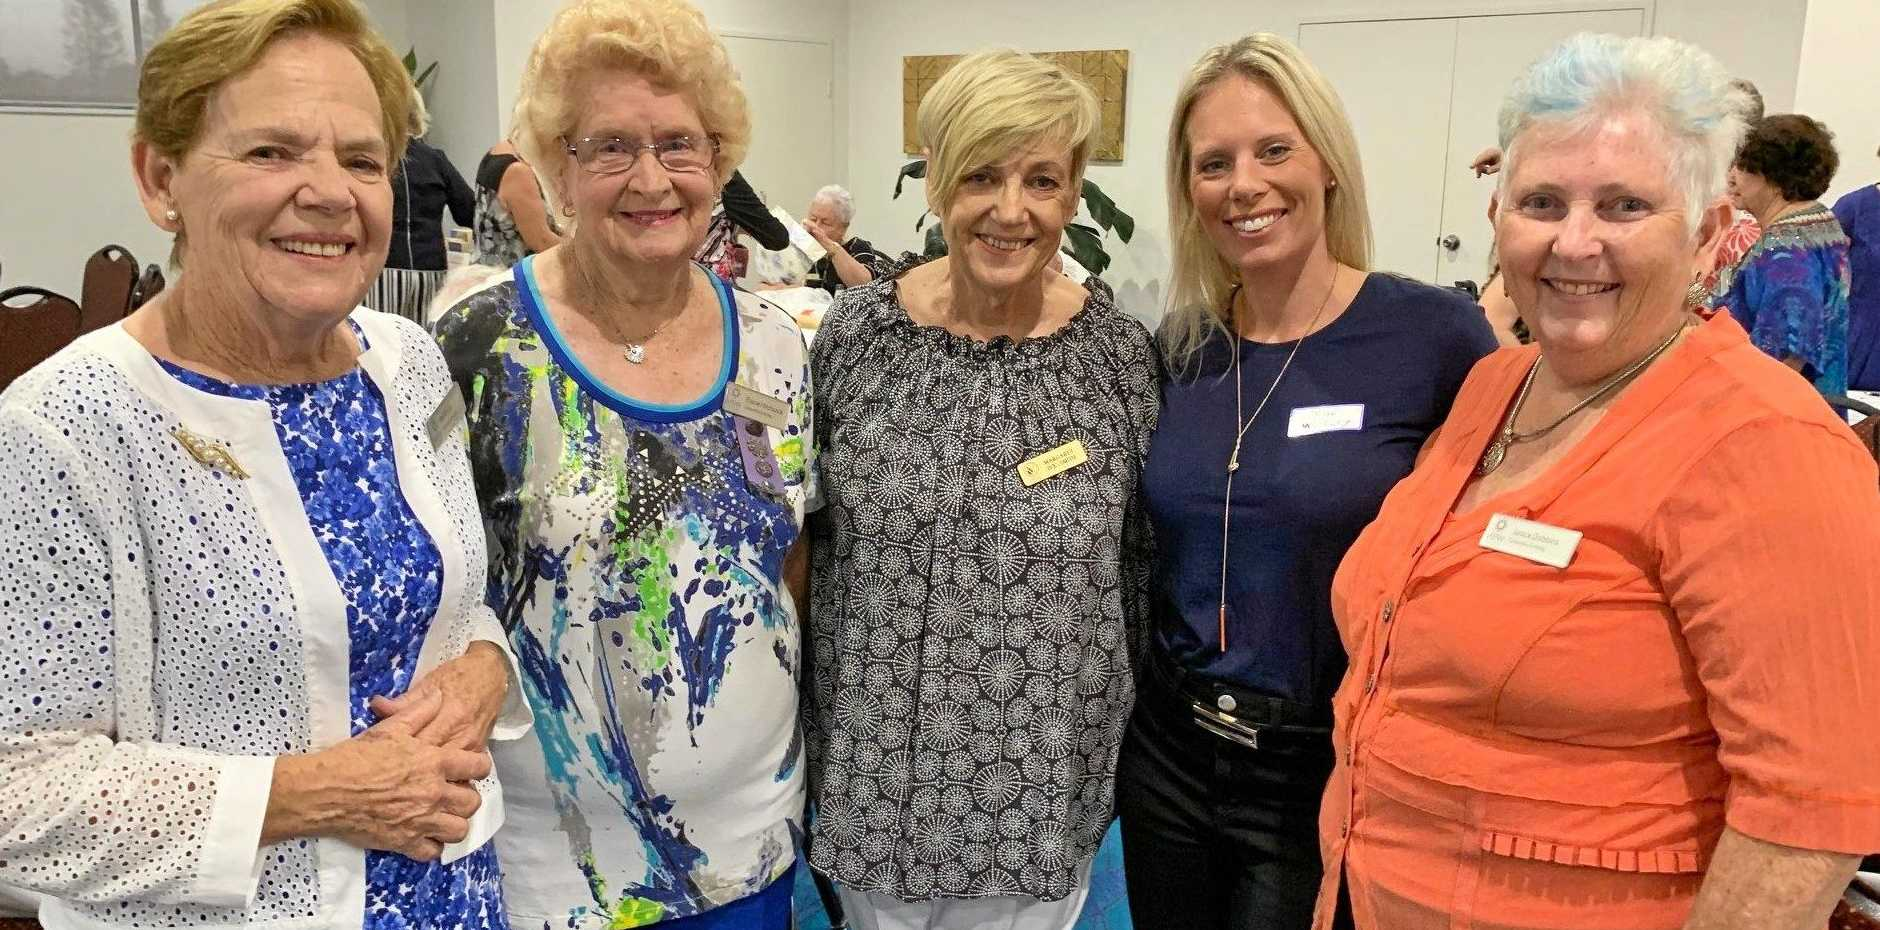 Pat Porter, Elaine Hitchcock, Margaret Ive-Smith, Prue Mosely and Janice Dobbins chat before the recent Caloundra Evening VIEW Dinner.